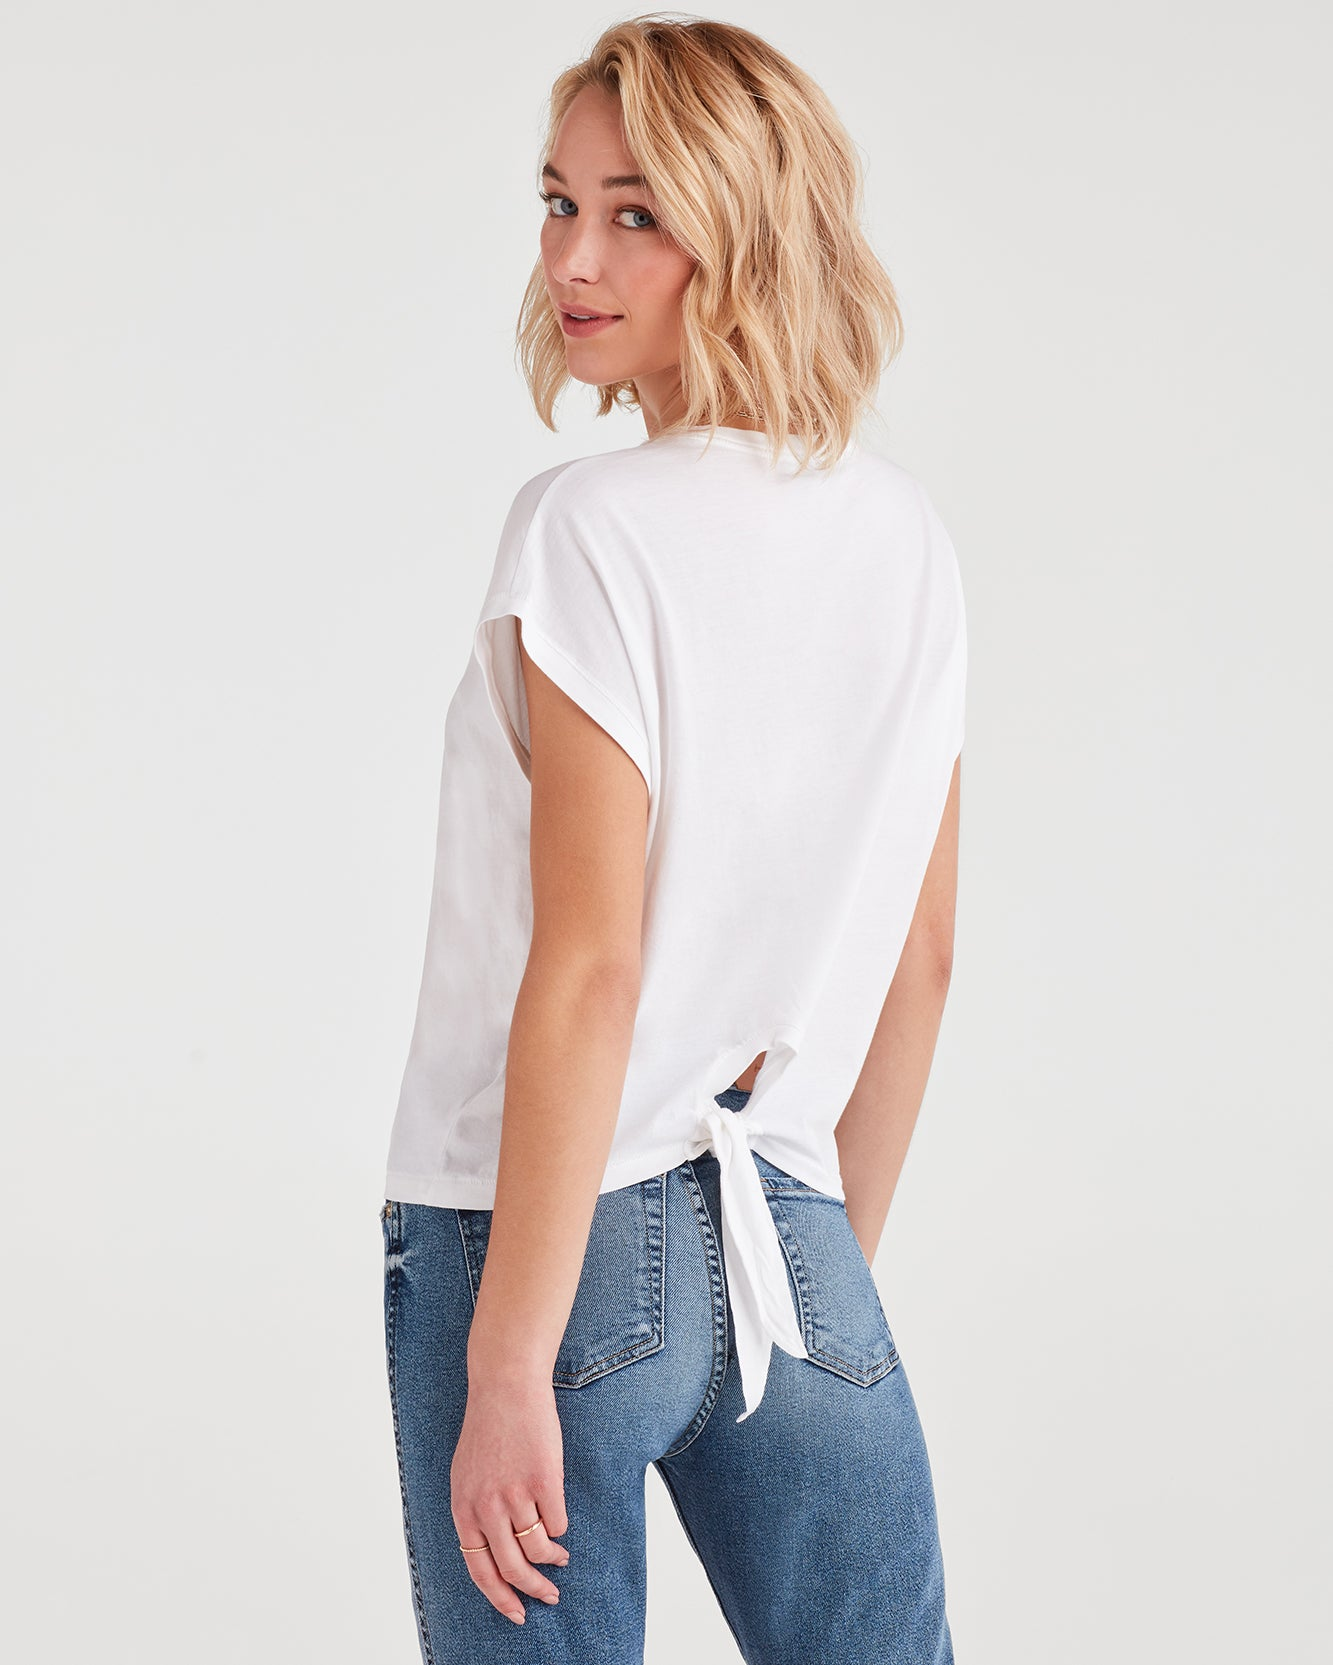 Image of Tie Back Tee in Optic White